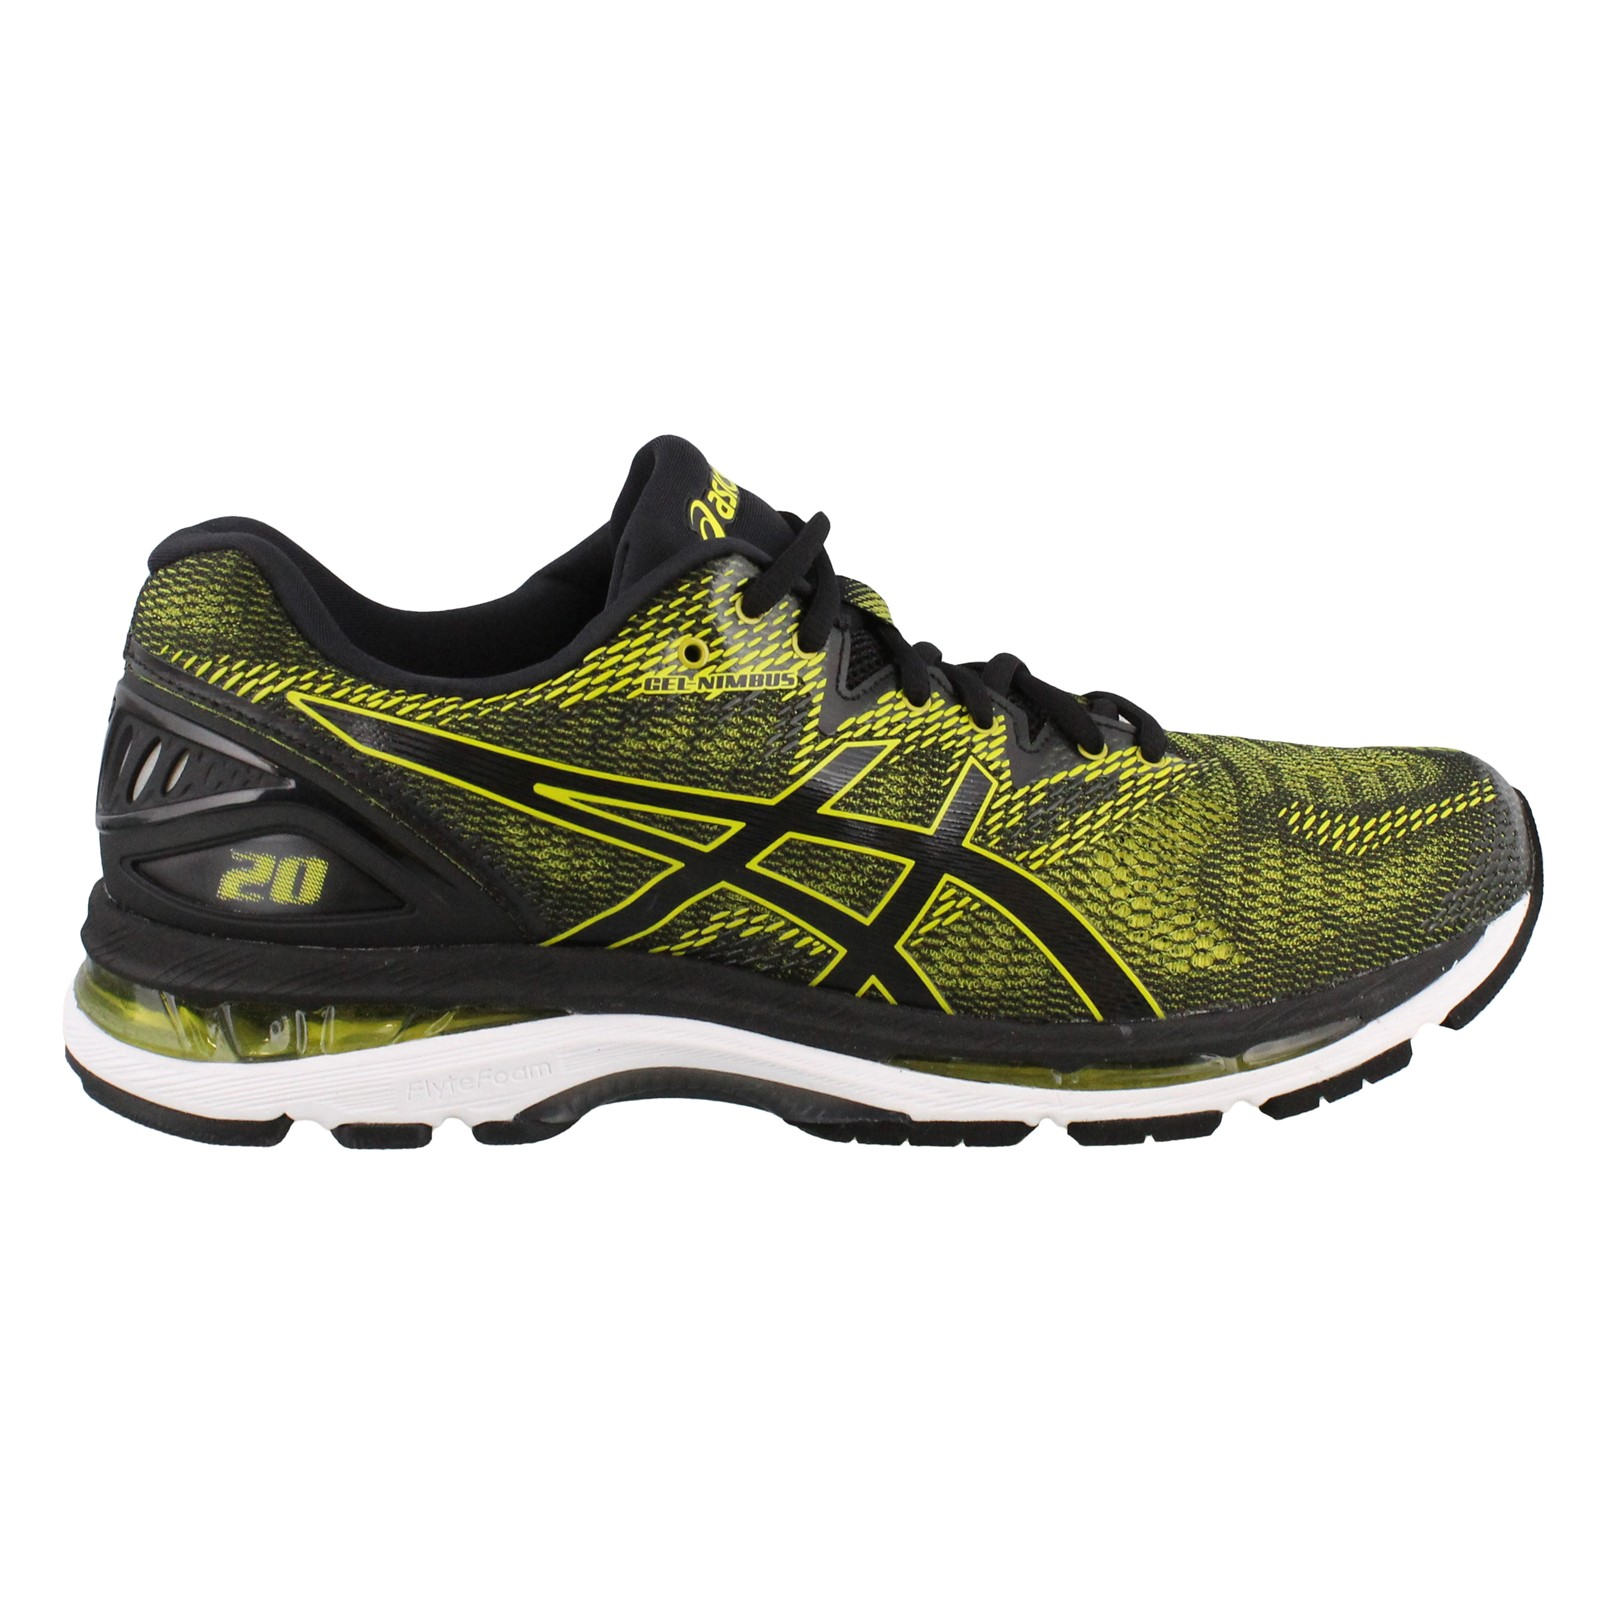 Men's Asics, Gel Nimbus 20 Running Sneakers